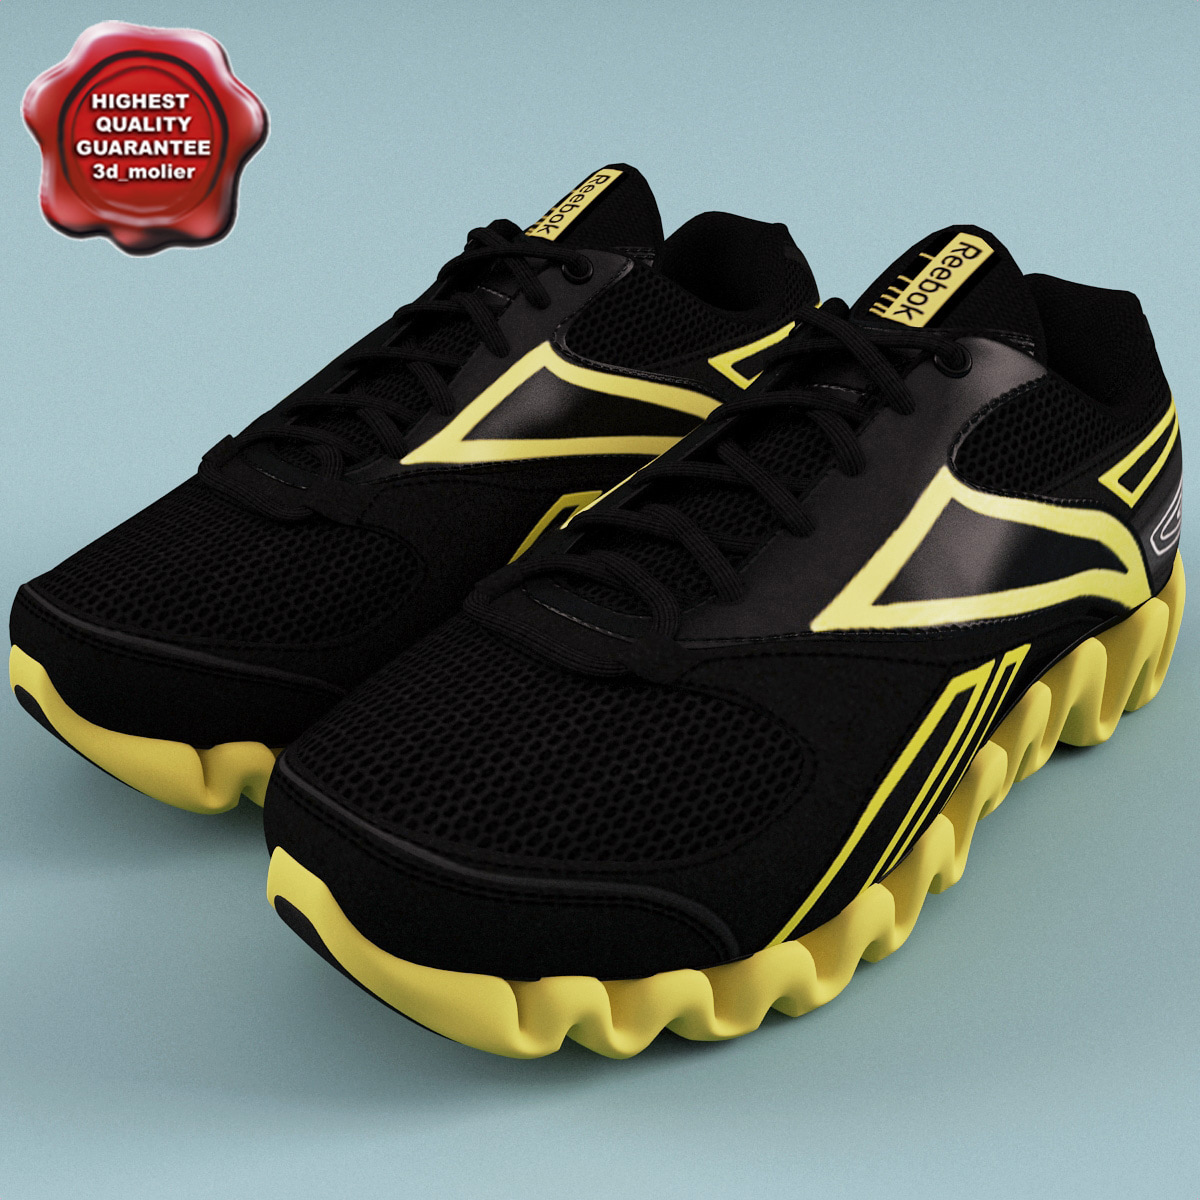 Runing_Men_Shoes_Reebok_Zig_Fuel_00.jpg